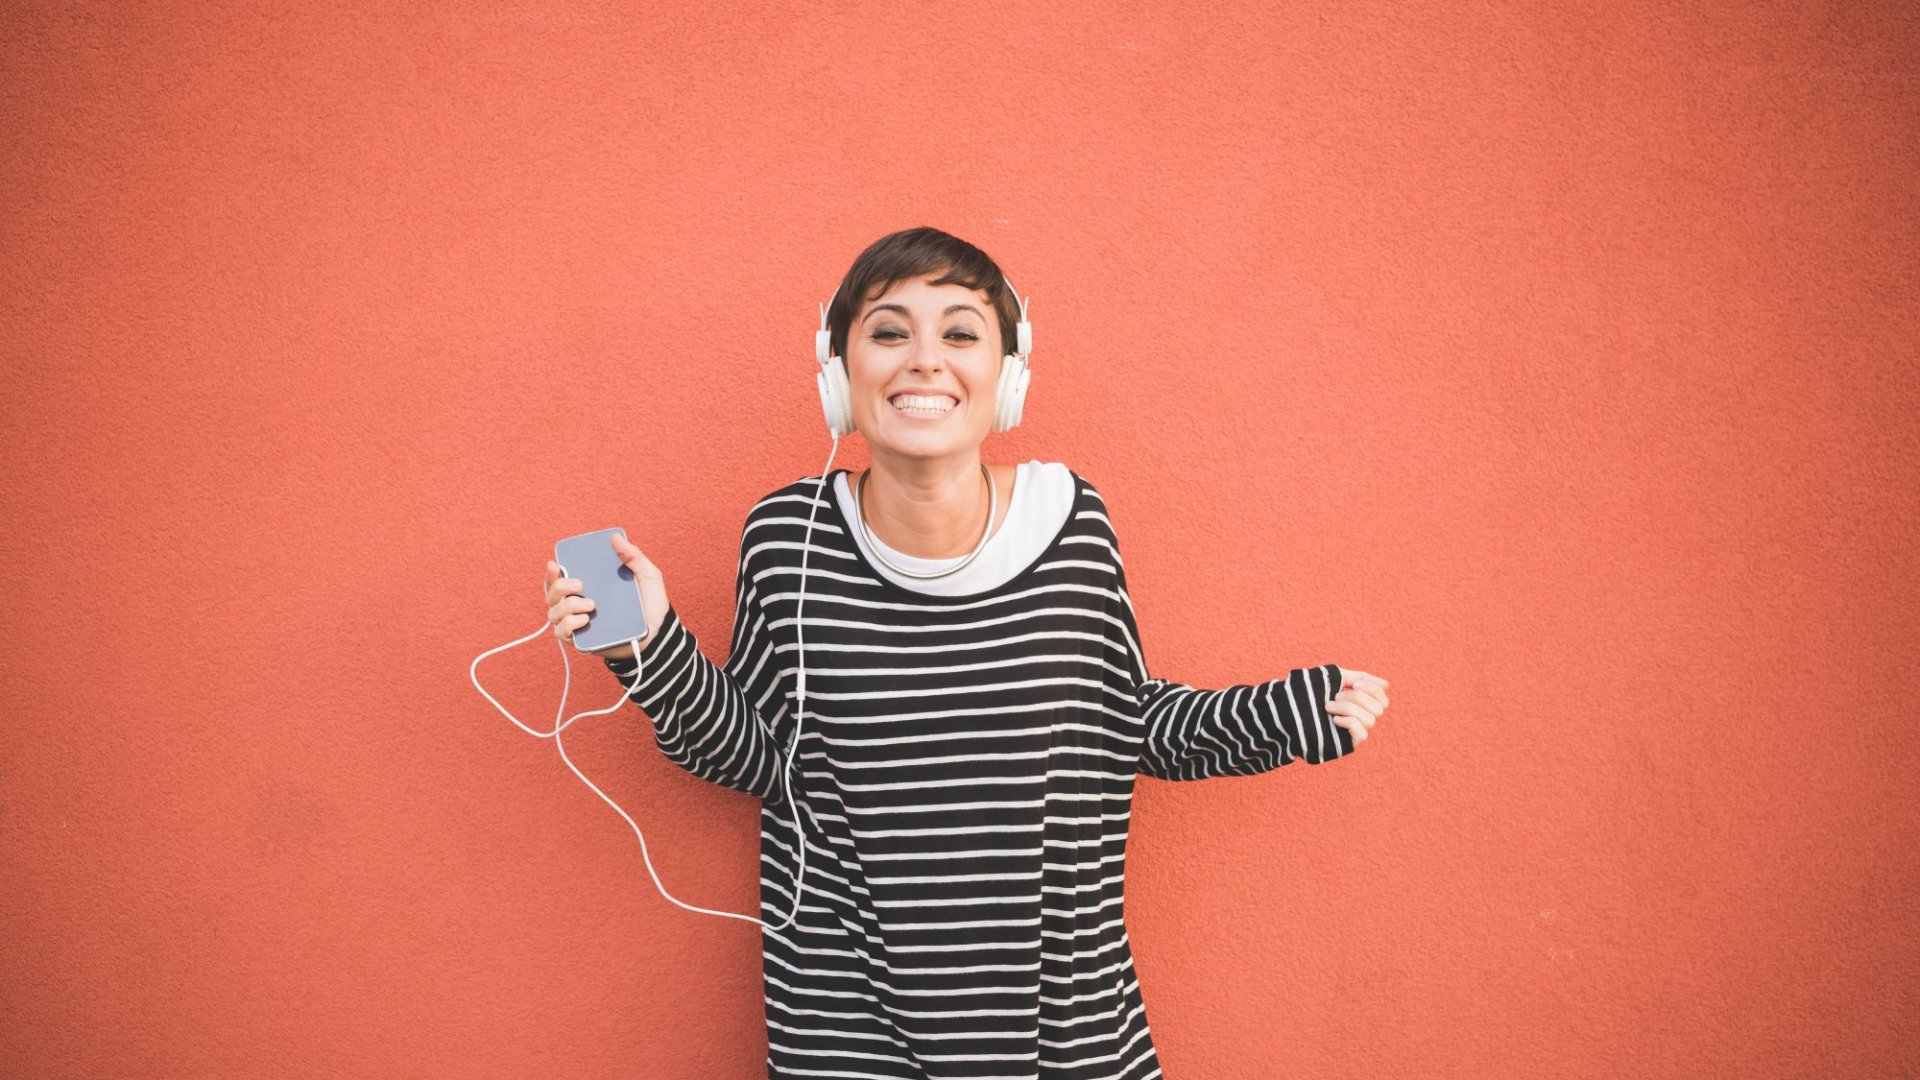 14 Podcasts That Will Make You a More Successful Entrepreneur